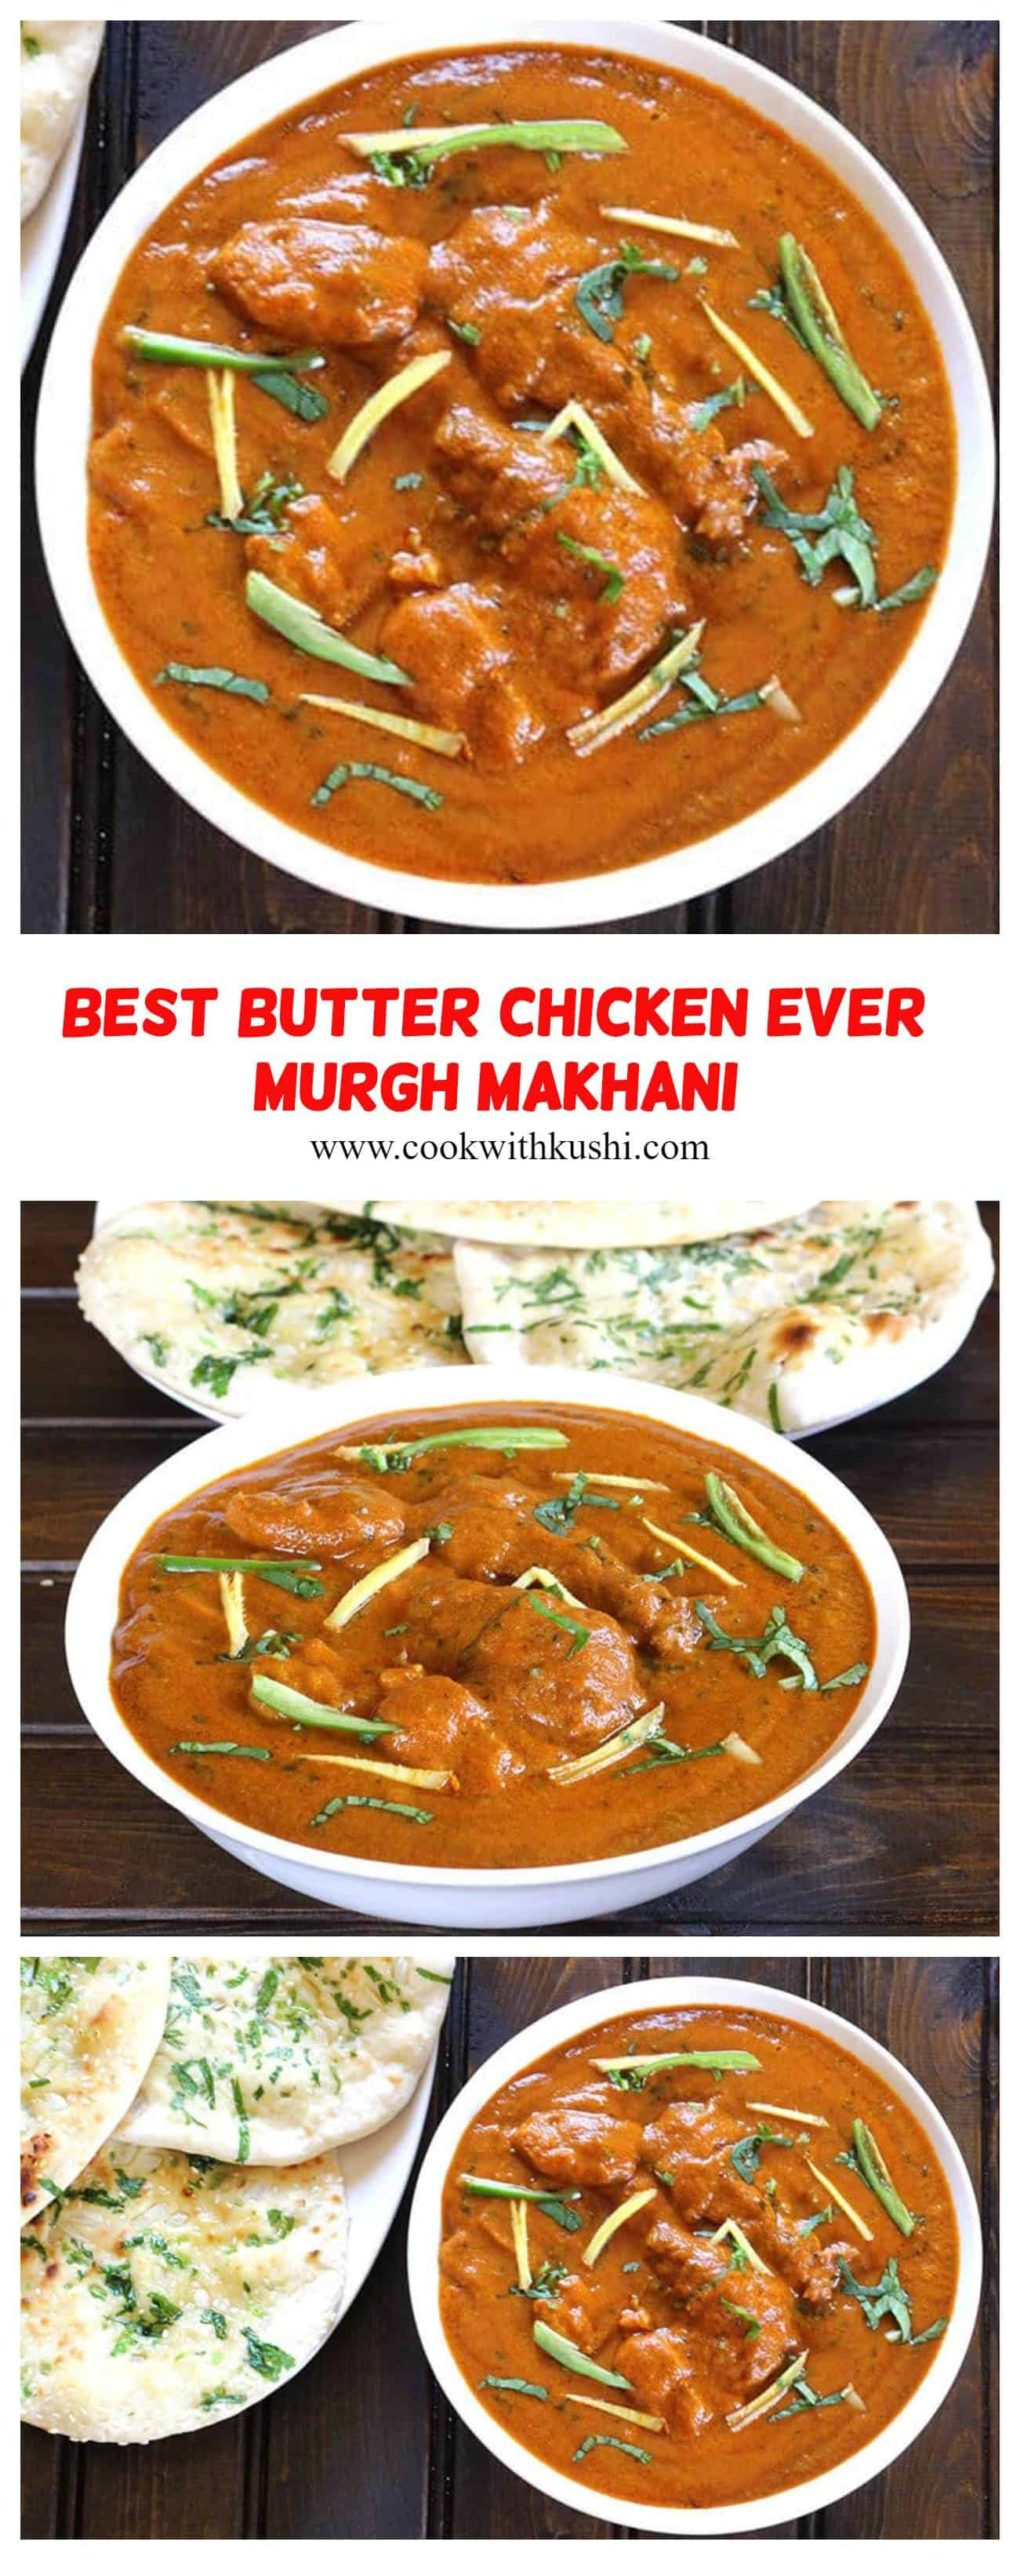 Butter Chicken or Murgh Makhani  is an easy to make, rich, creamy and delicious, popular Indian dish where the chicken is cooked in aromatic and spiced tomato based gravy. #butterchicken #creamybutterchicken #murghmakhani #indiandishes #indiangravy #indiancurry #chickenrecipes #dinnerideas #dinnerparties #dinnerrecipes #bestchickendishes #restaurantstyle #dhabastyle